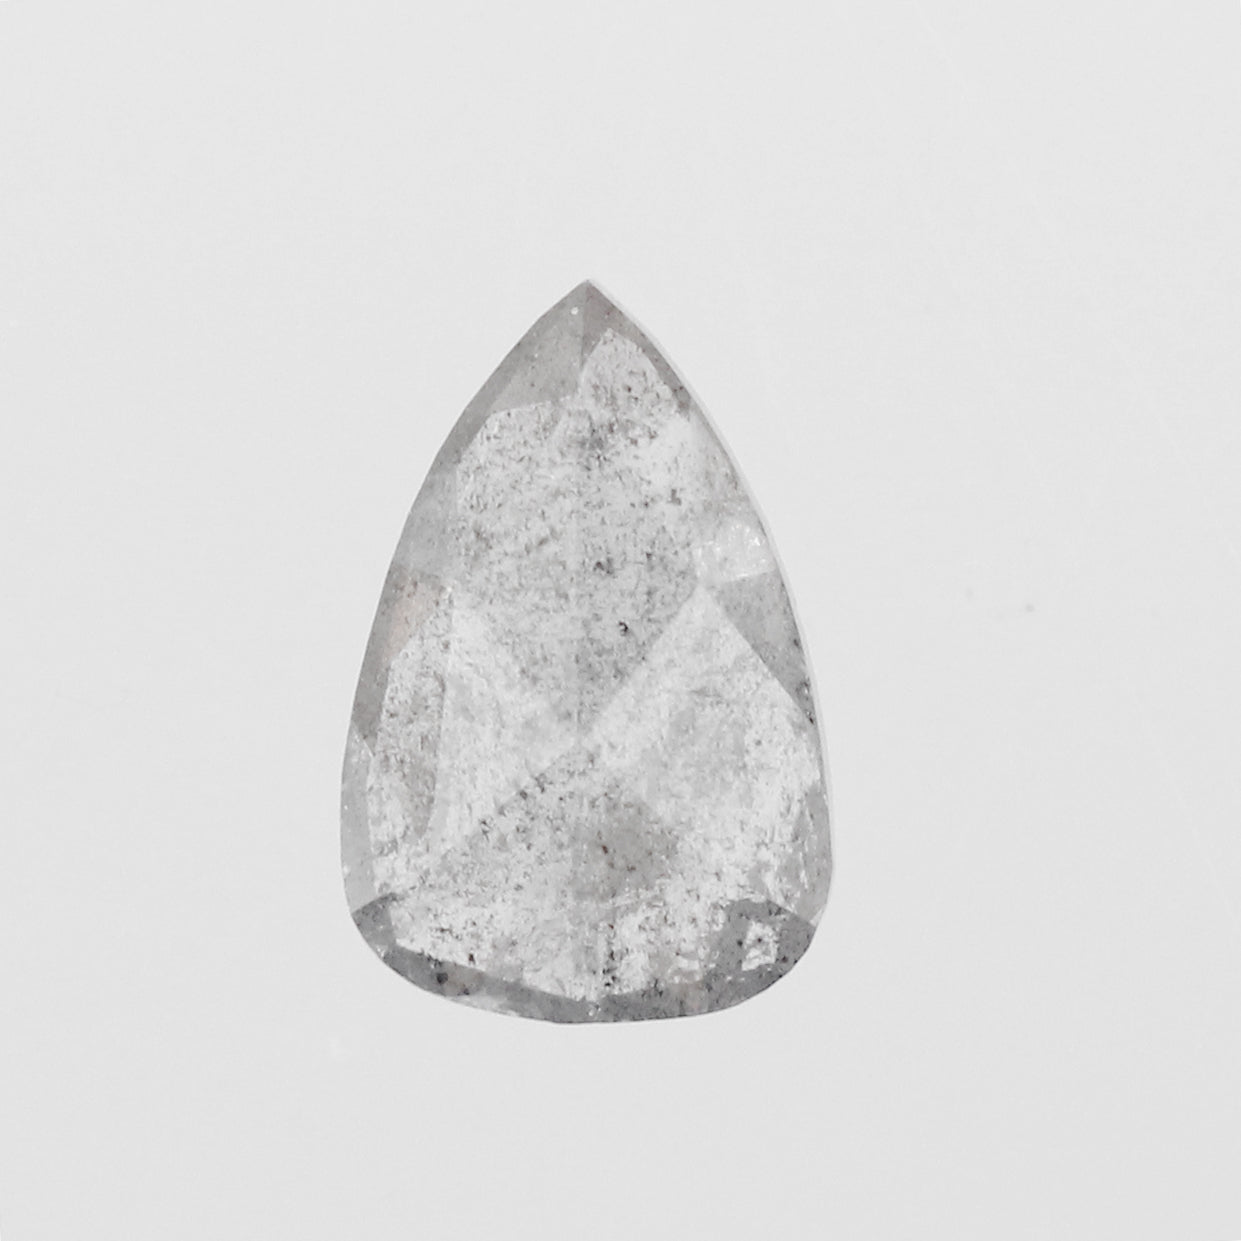 1.53 Carat Pear Celestial Diamond® for Custom Work - Inventory Code GP153 - Celestial Diamonds ® by Midwinter Co.